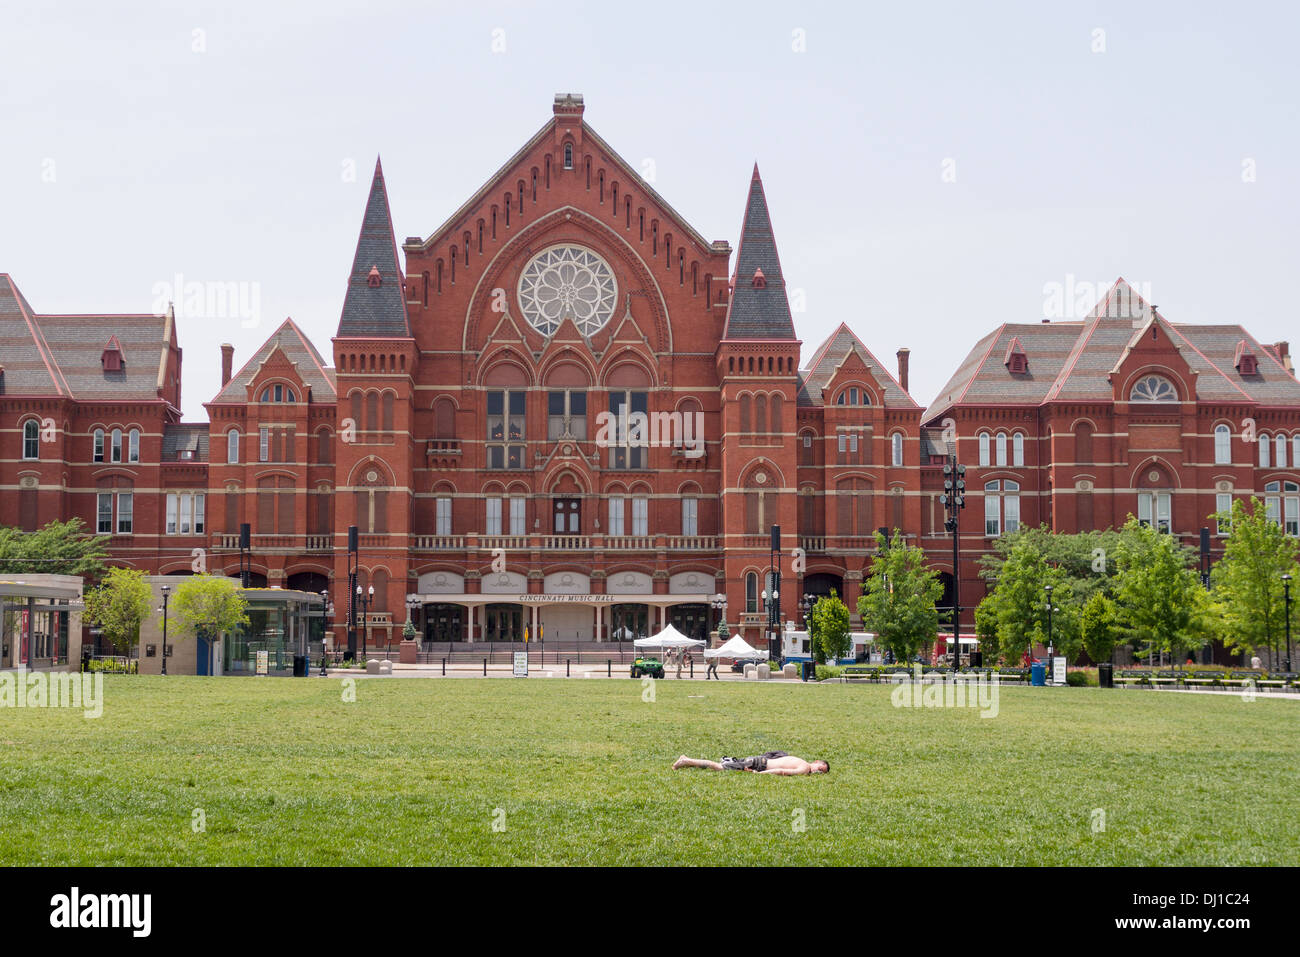 Cincinnati Music Hall with Sunbather. A young man catches a few spring rays on the lawn in front of the red brick music hall. - Stock Image